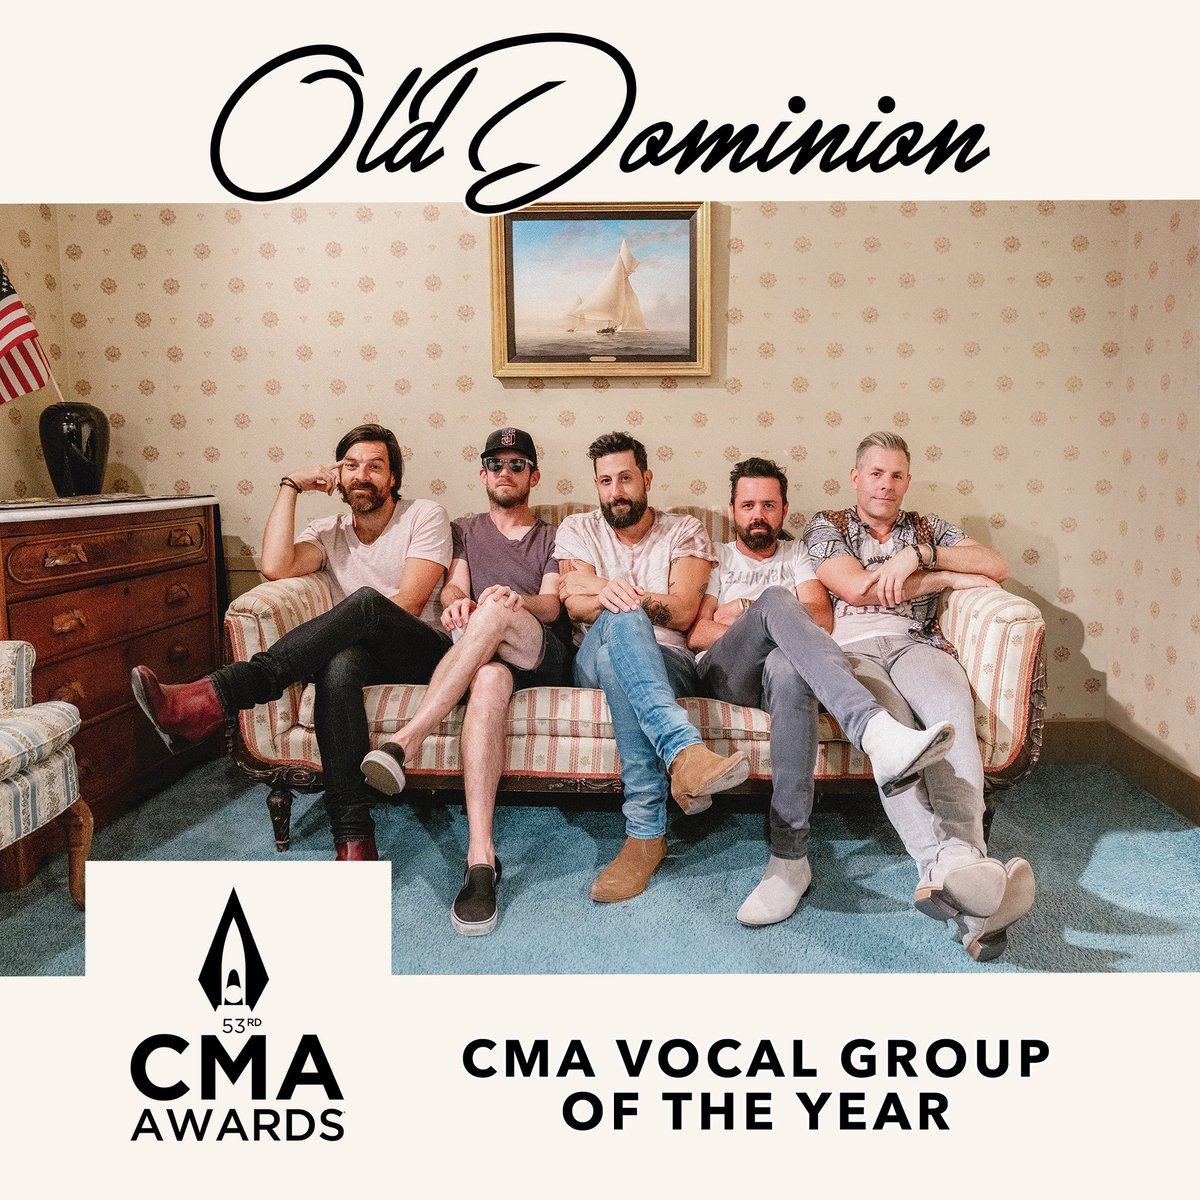 Honored and grateful 🙏🏻 #cmaawards #vocalgroupoftheyear @CountryMusic